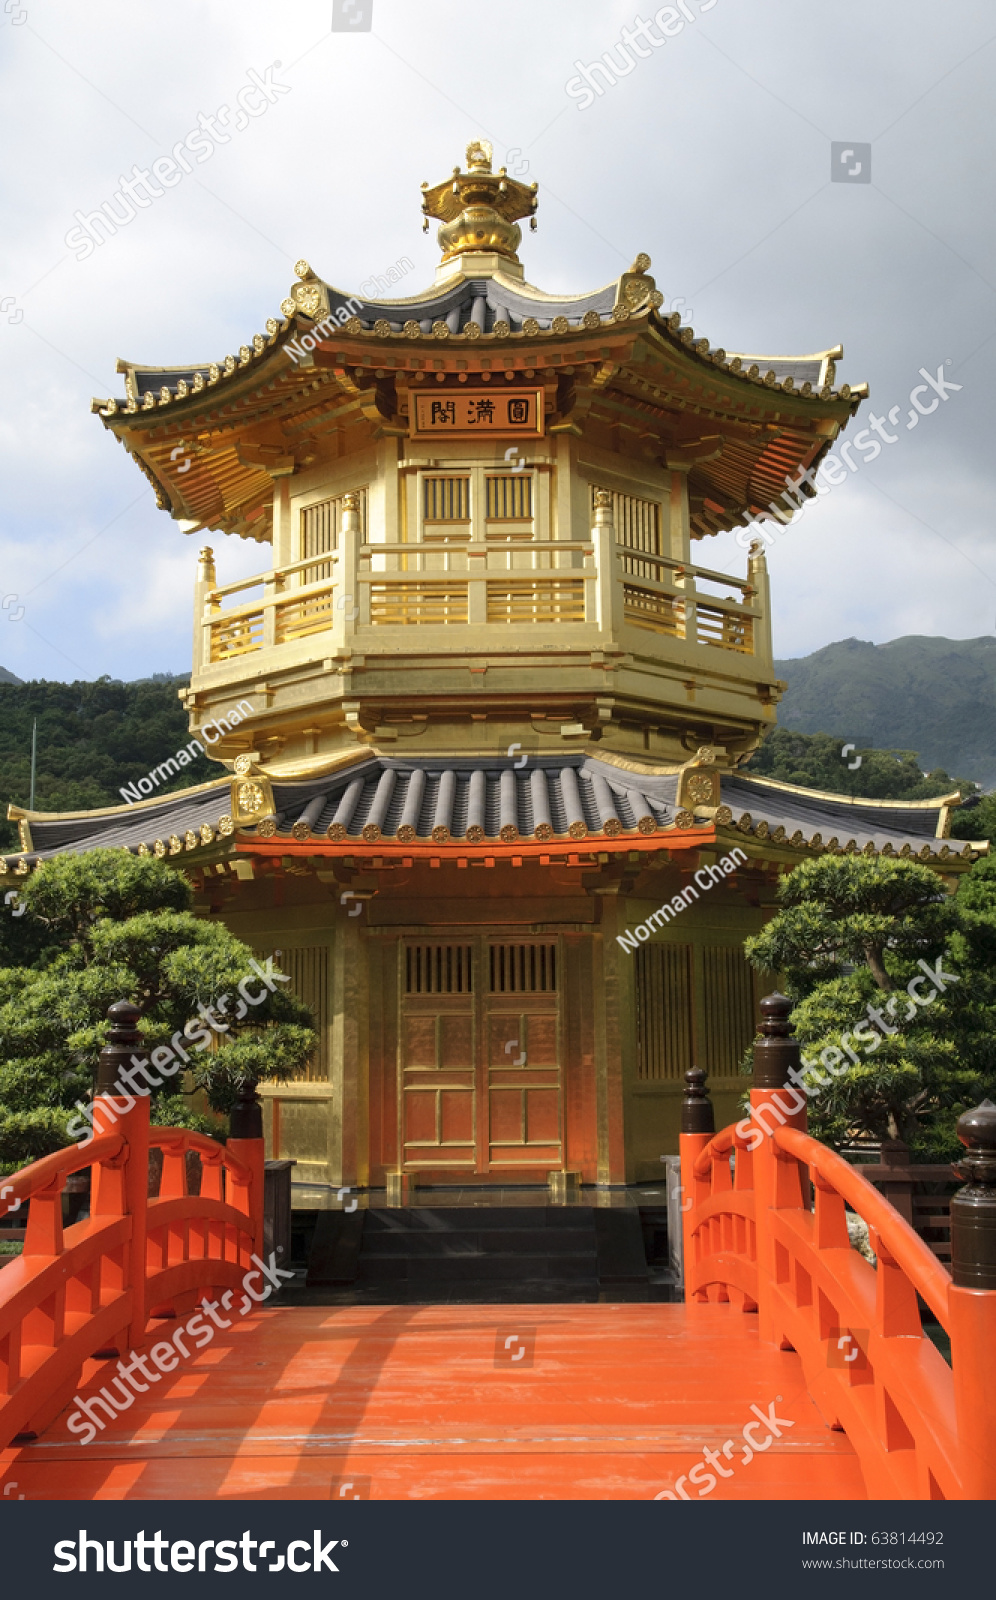 The Pavilion of Absolute Perfection in the Nan Lian Garden, Hong ...